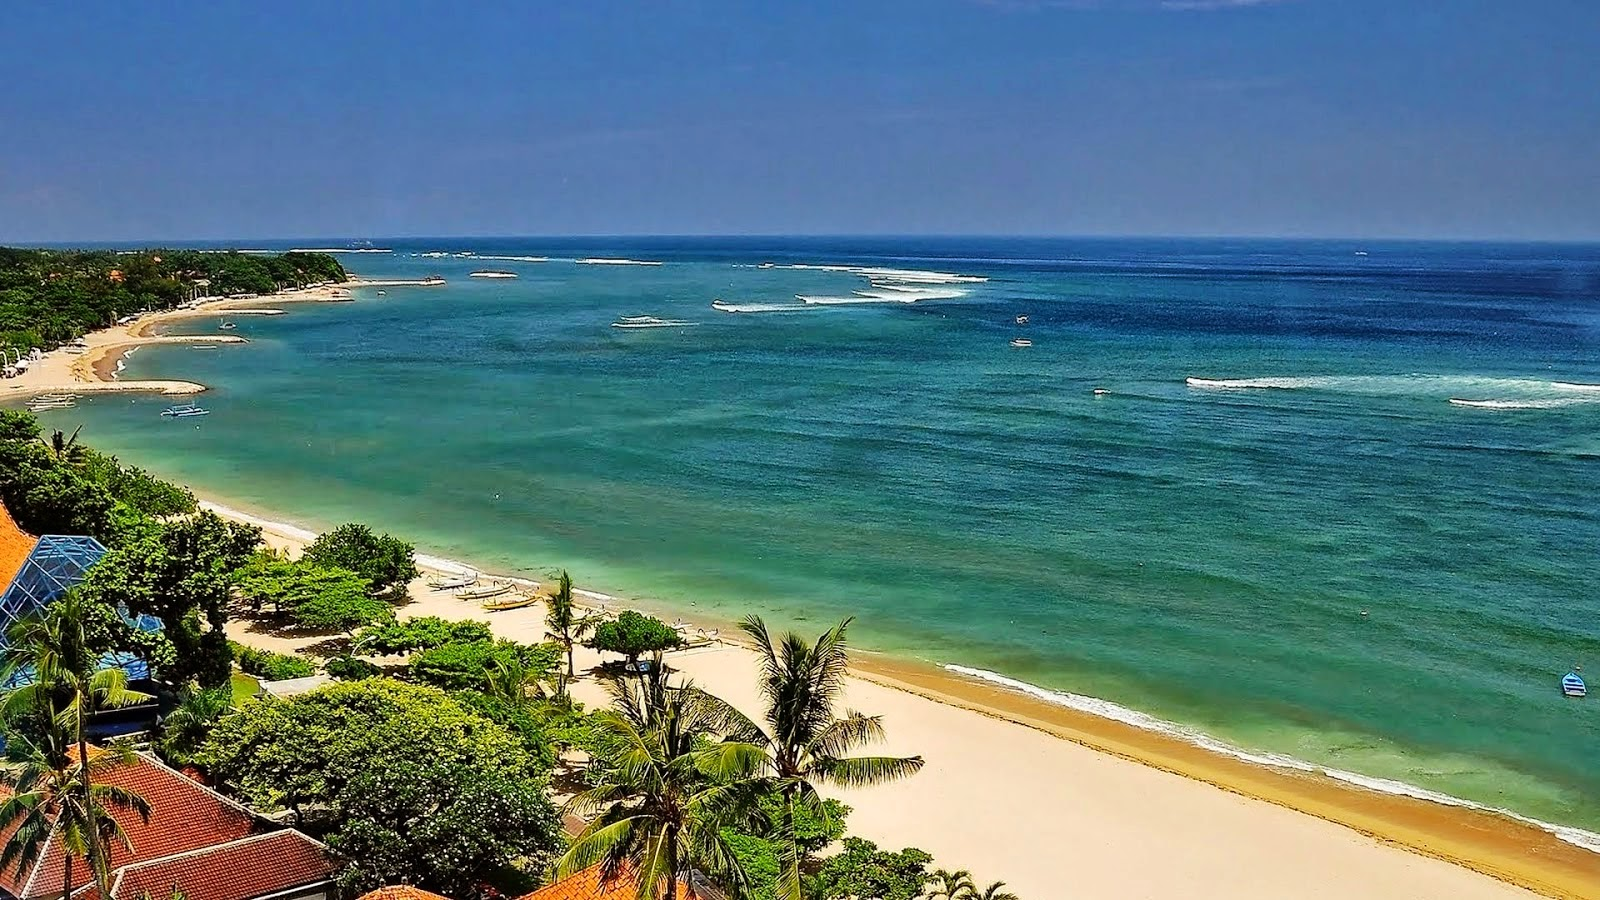 kuta beach is a tourist spot in bali the most famous and visited by tourists because of its location close to airport beautiful beaches suitable